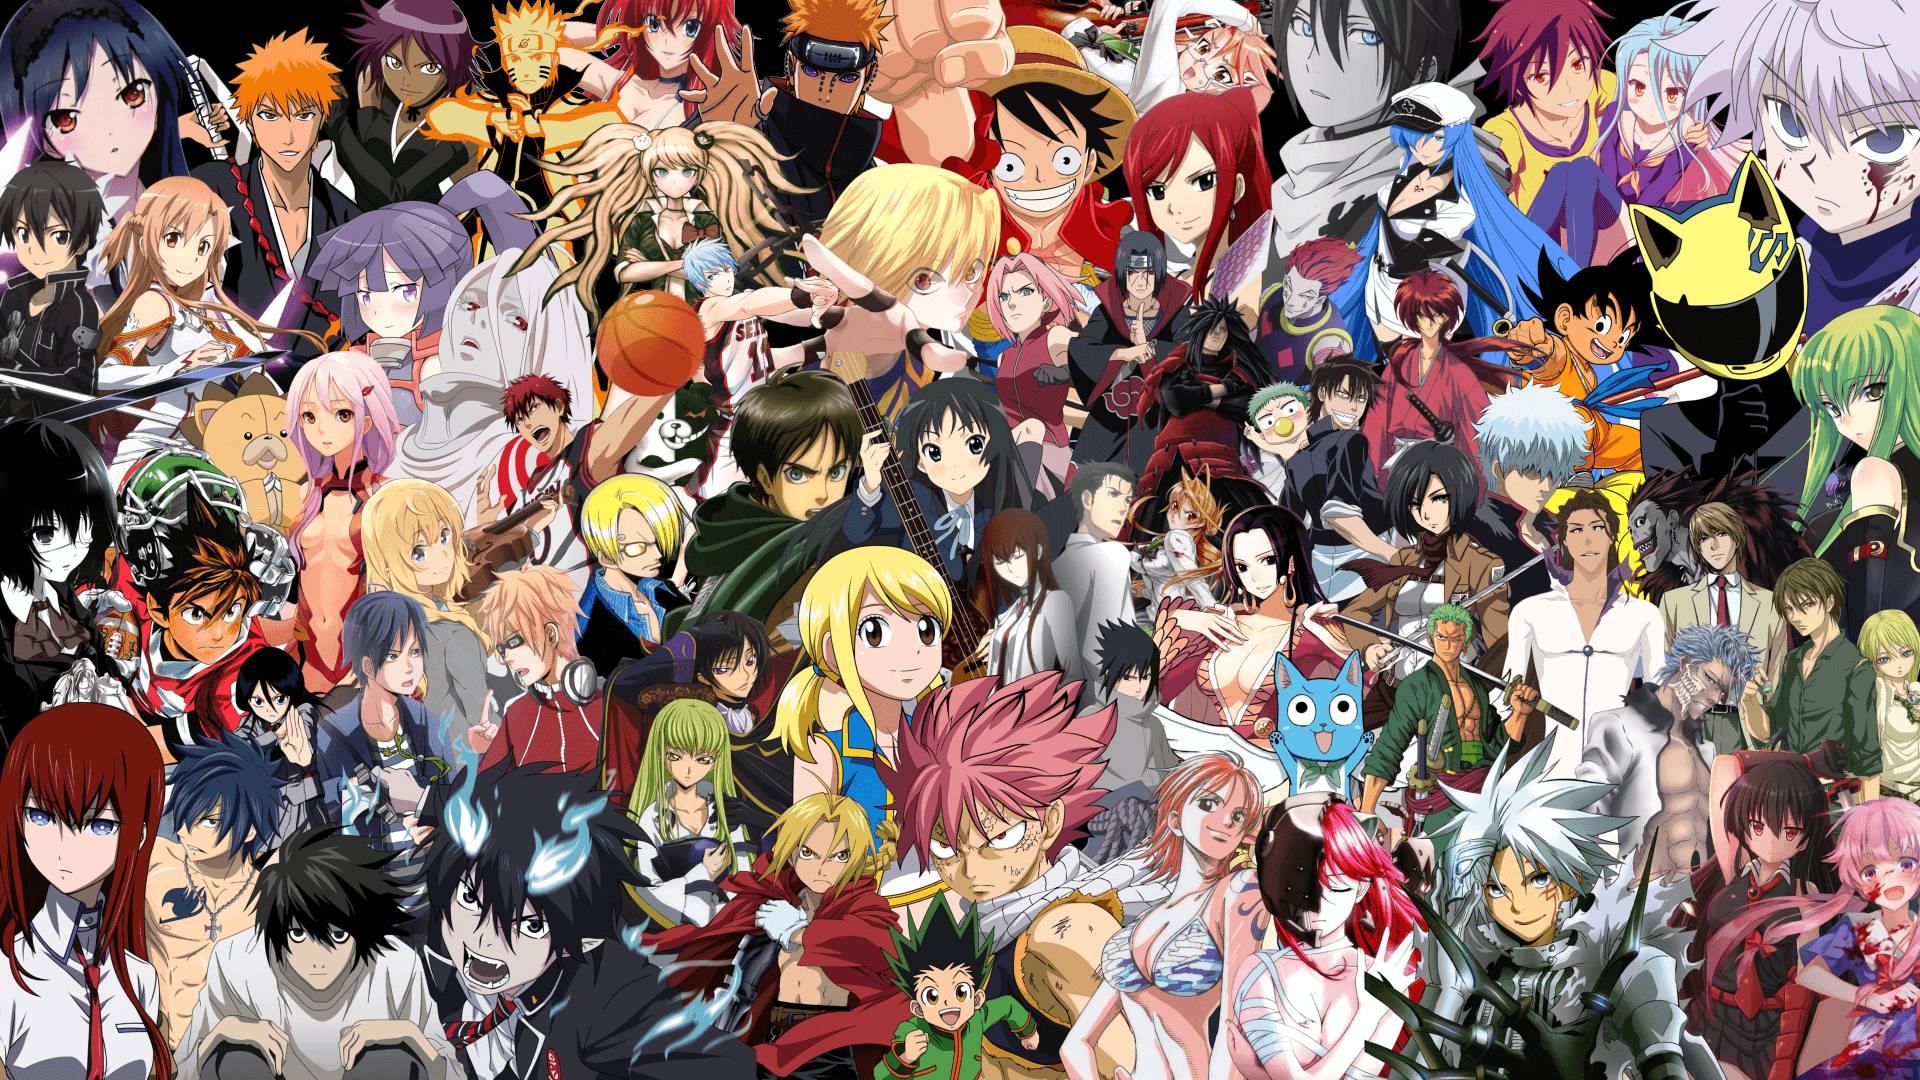 Anime Crossover Wallpapers   Top Anime Crossover Backgrounds 1920x1080